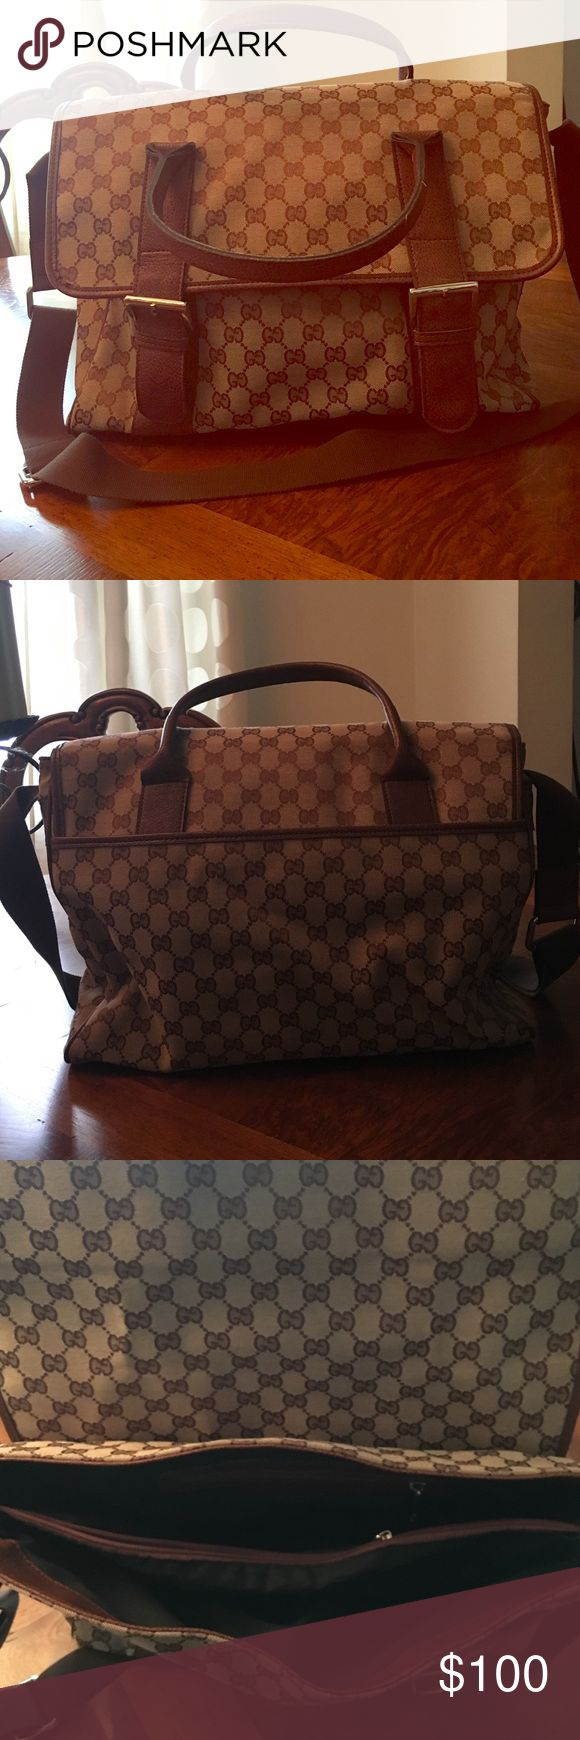 Gently used brown bag Perfect for a diaper bag or a business bag. Thick strap. Gently used. Very good messenger bag . Bags Crossbody Bags